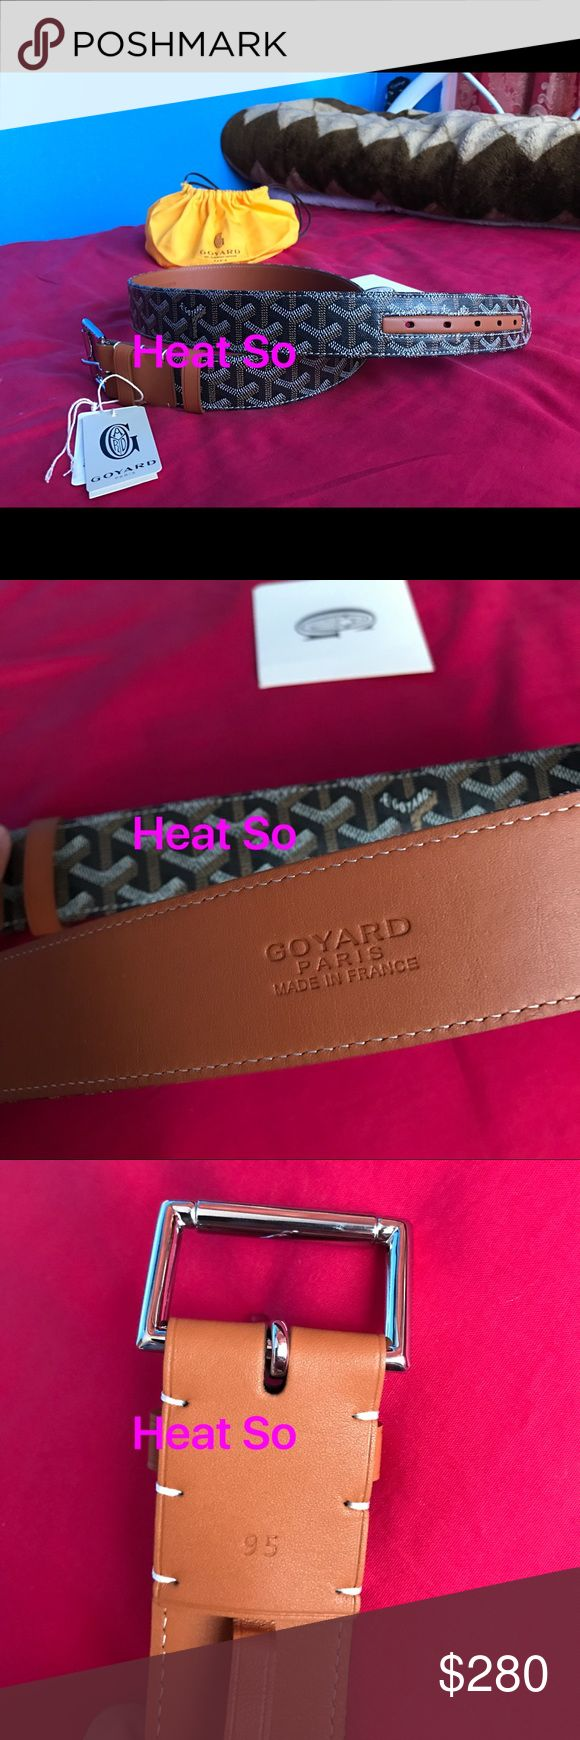 NWT and genuine brown Goyard belt For sale are my authentic and new men's brown leather goyard belts. These belts alphabet no flaws and come with original dustbag as well as tags. Sizes range from 28-36. These are 100% original and genuine not that cheap fake stuff that's out there. Goyard Accessories Belts